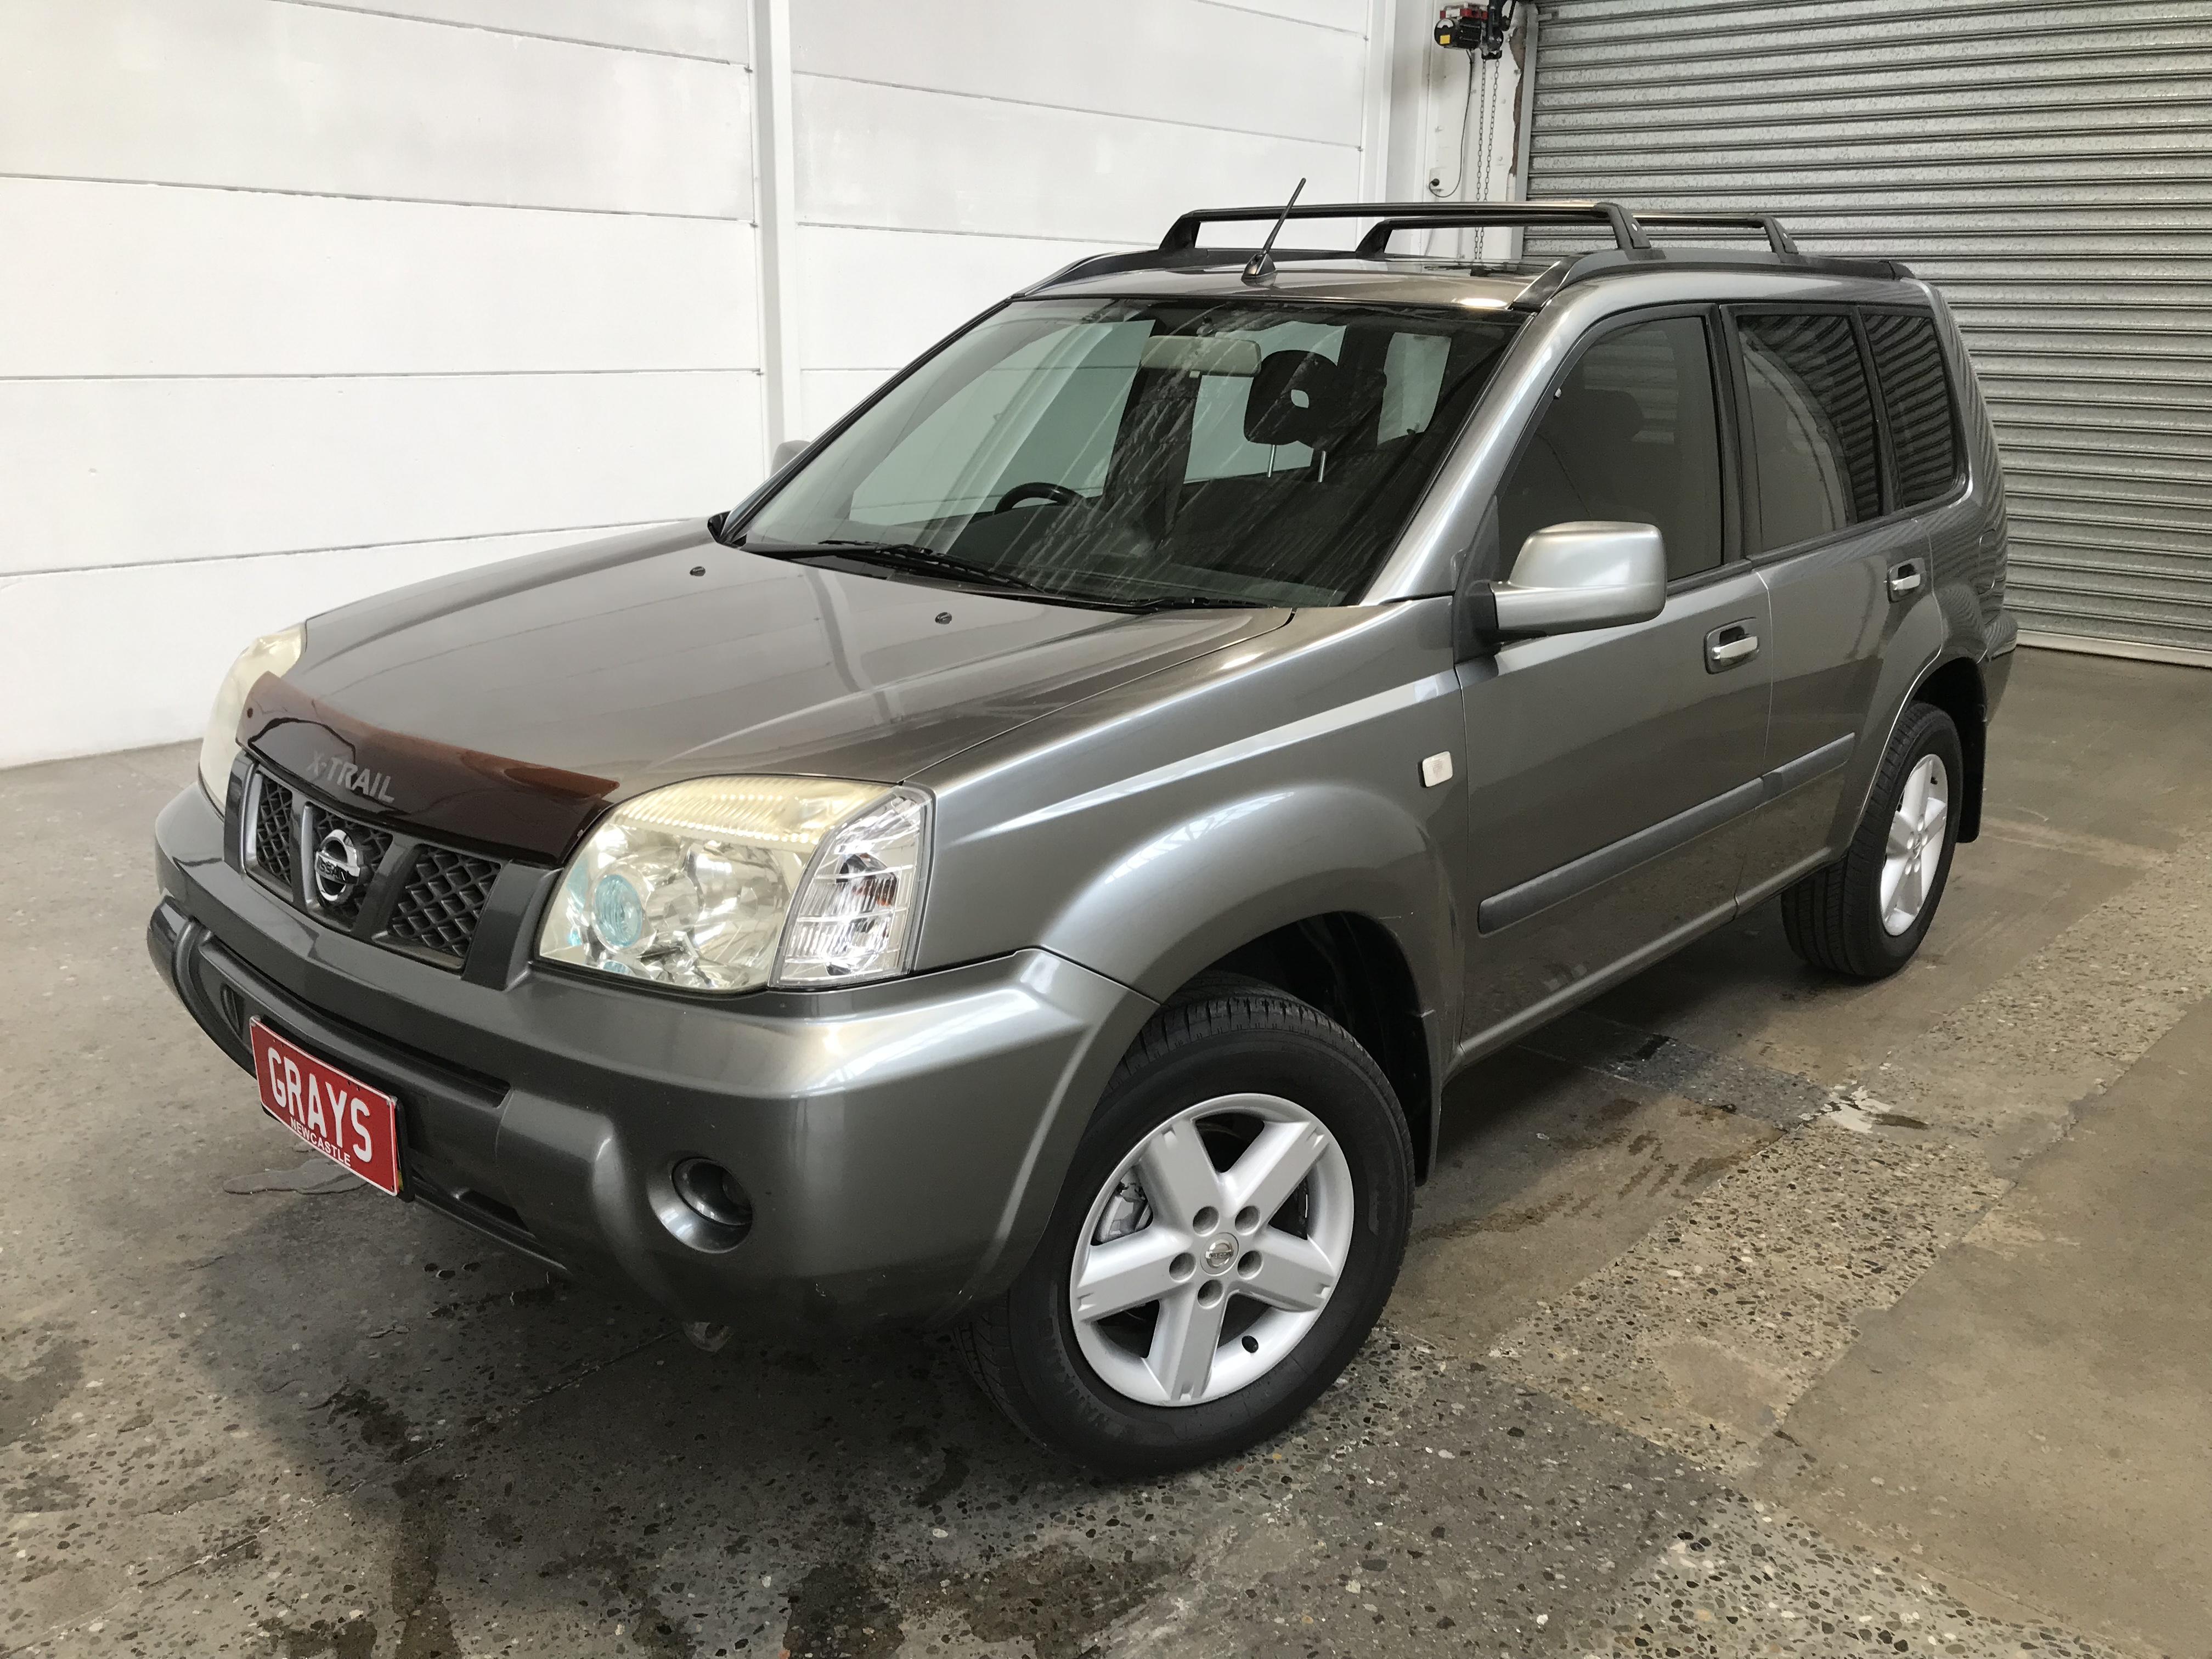 2006 Nissan X-Trail St-s extreme(4x4) T30 Automatic Wagon